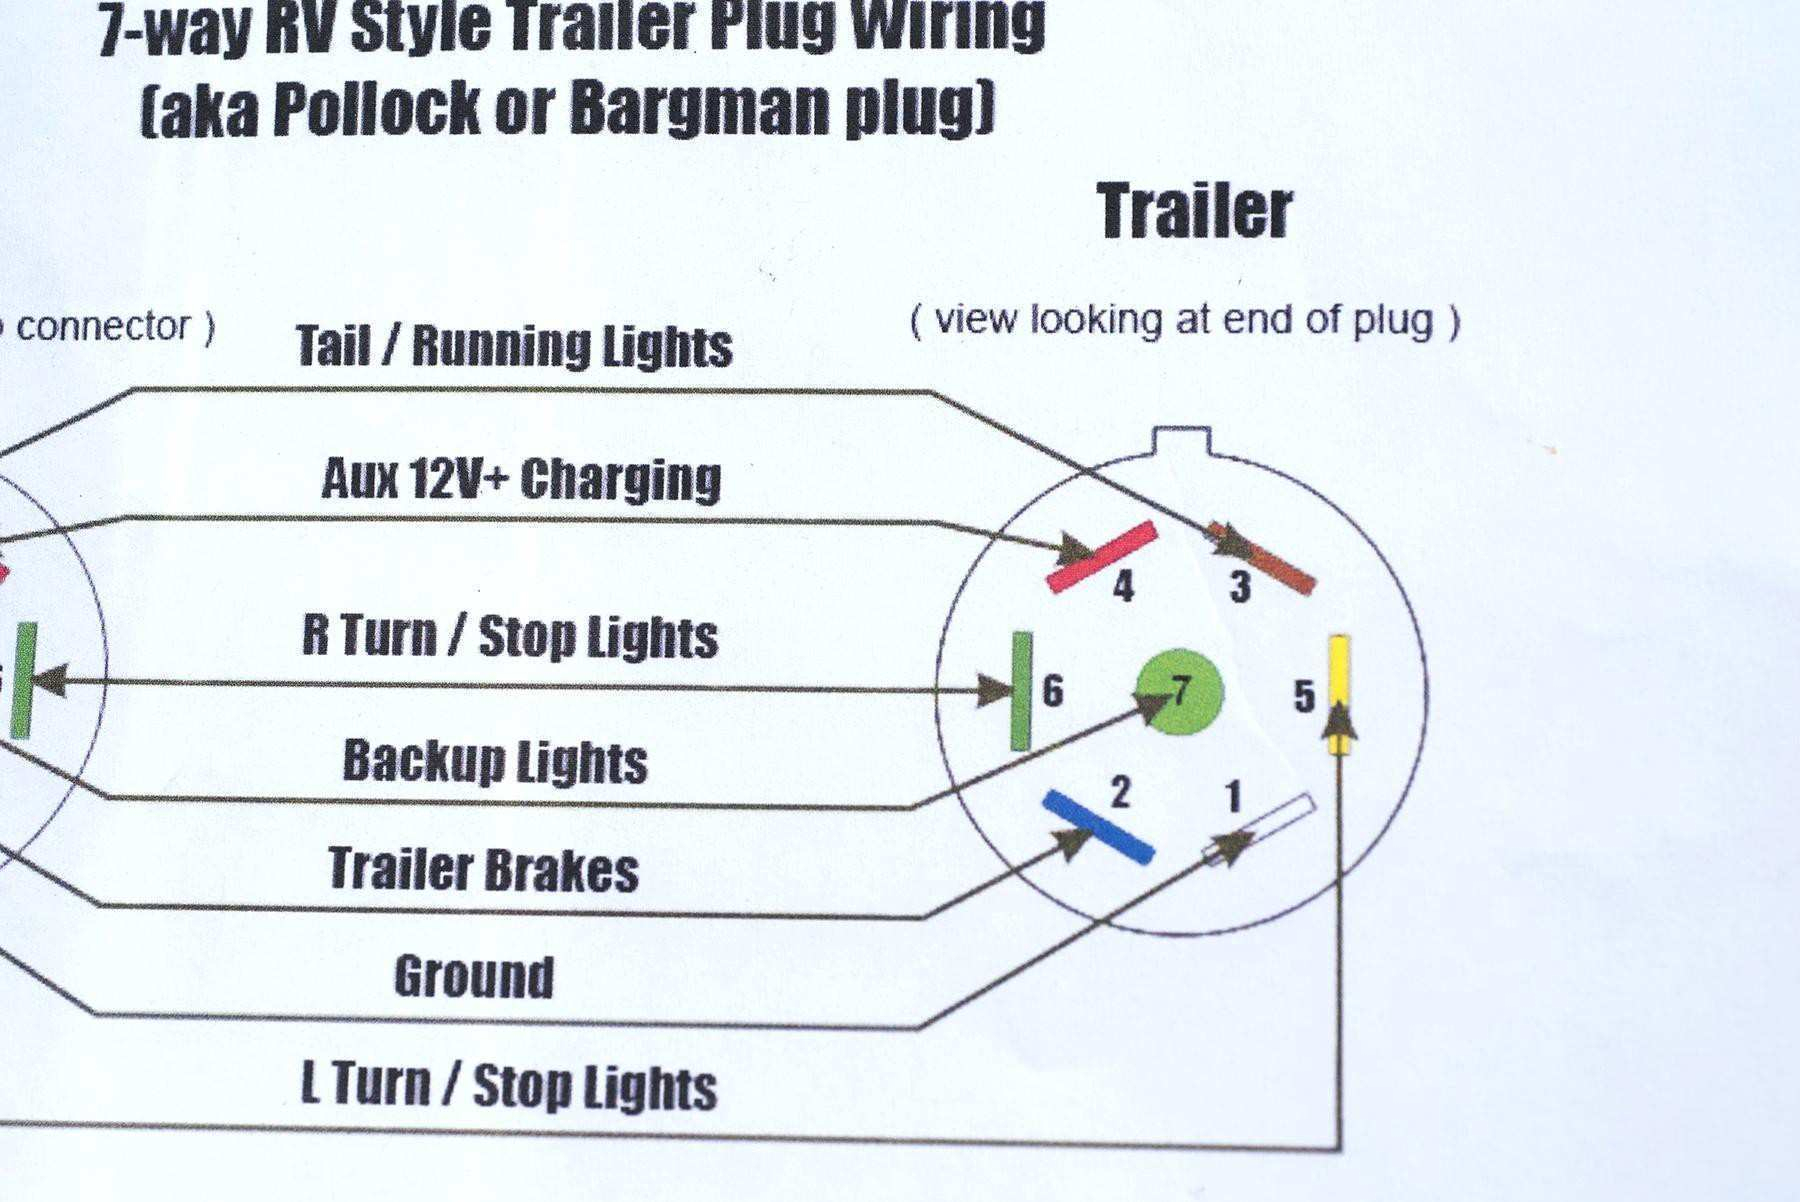 4 Way Trailer Wiring Diagram Ford | Wiring Diagram - Ford Trailer Wiring Diagram 7 Way